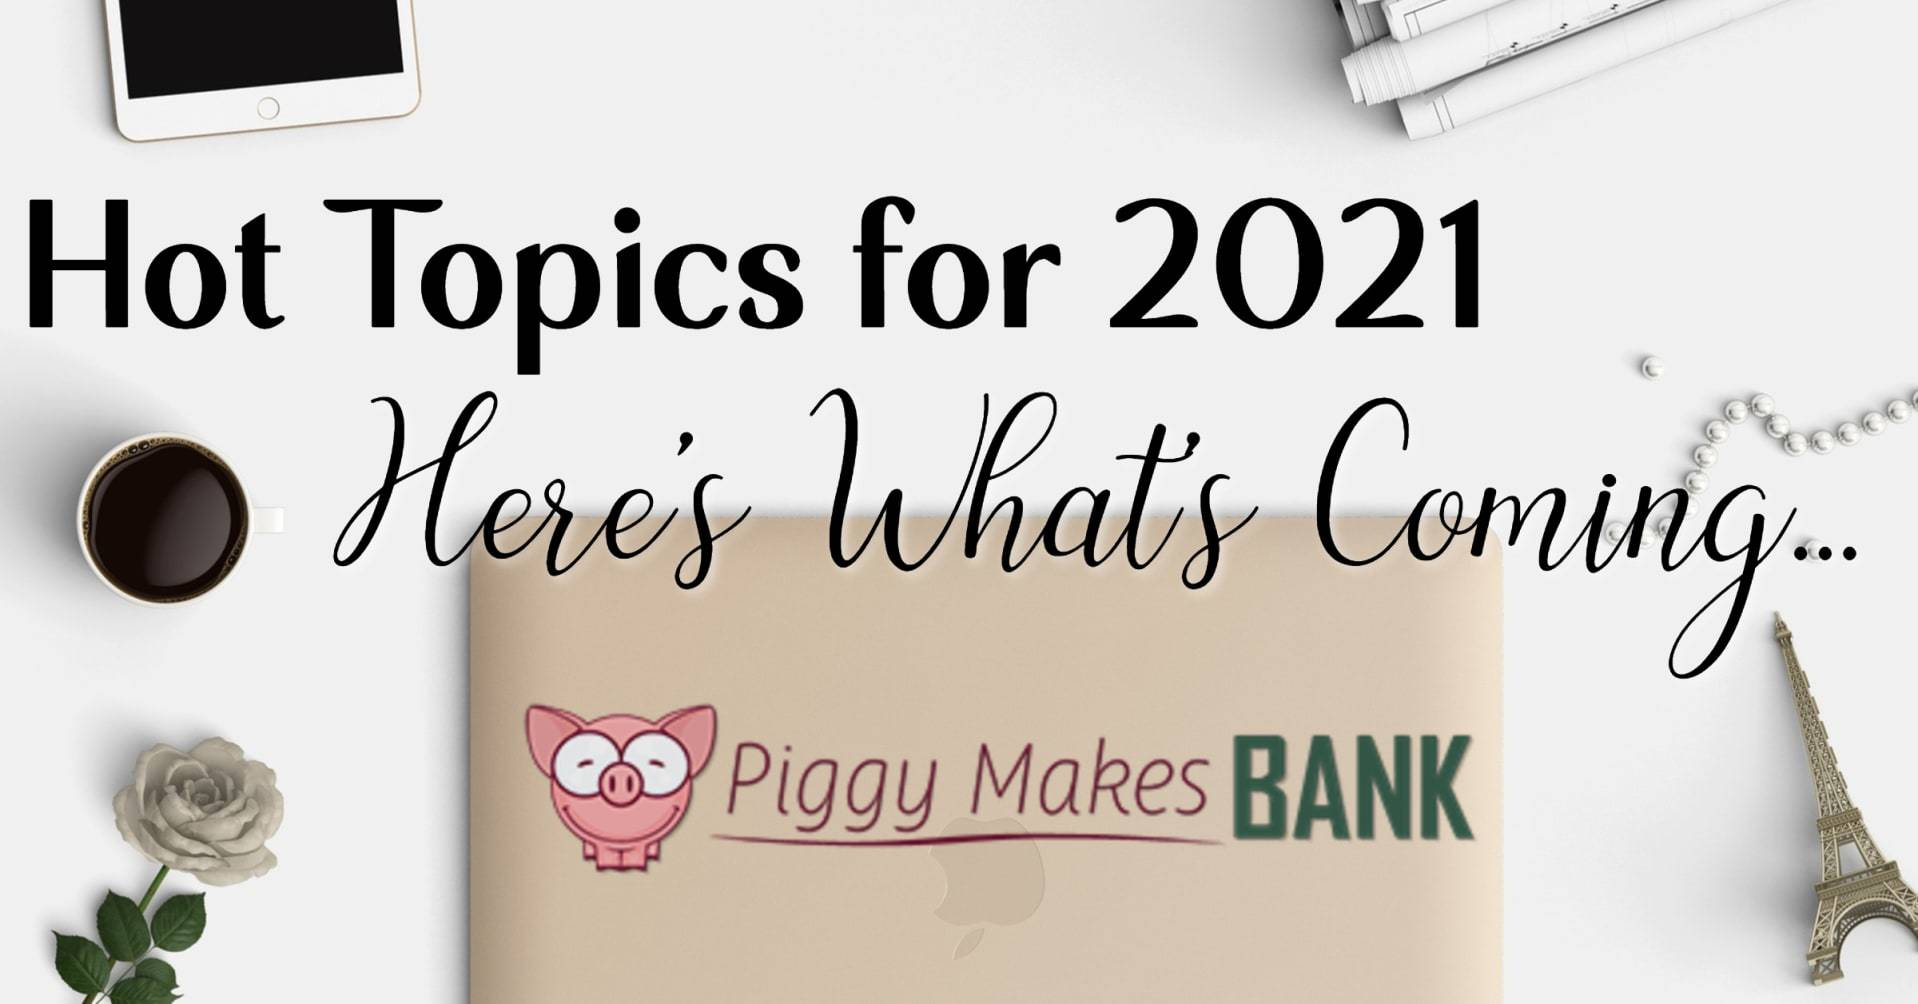 Piggy Makes Bank Planned Topics for 2021